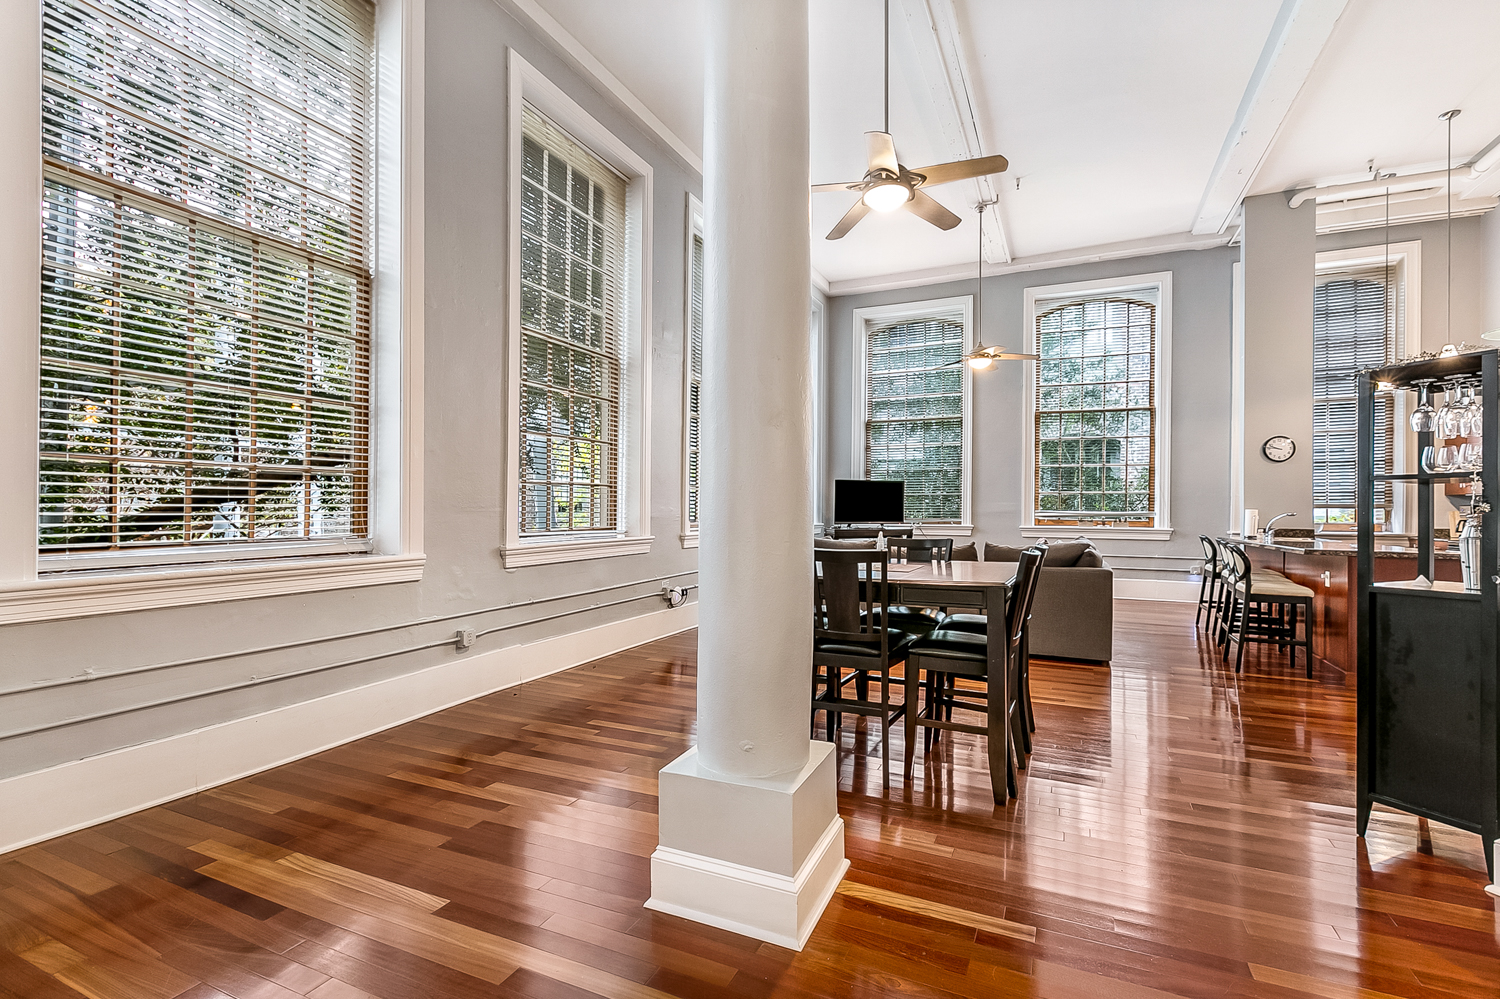 CBD/Warehouse District/South Market, Condo, 3 beds, 2.0 baths, $5000 per month New Orleans Rental - devie image_2